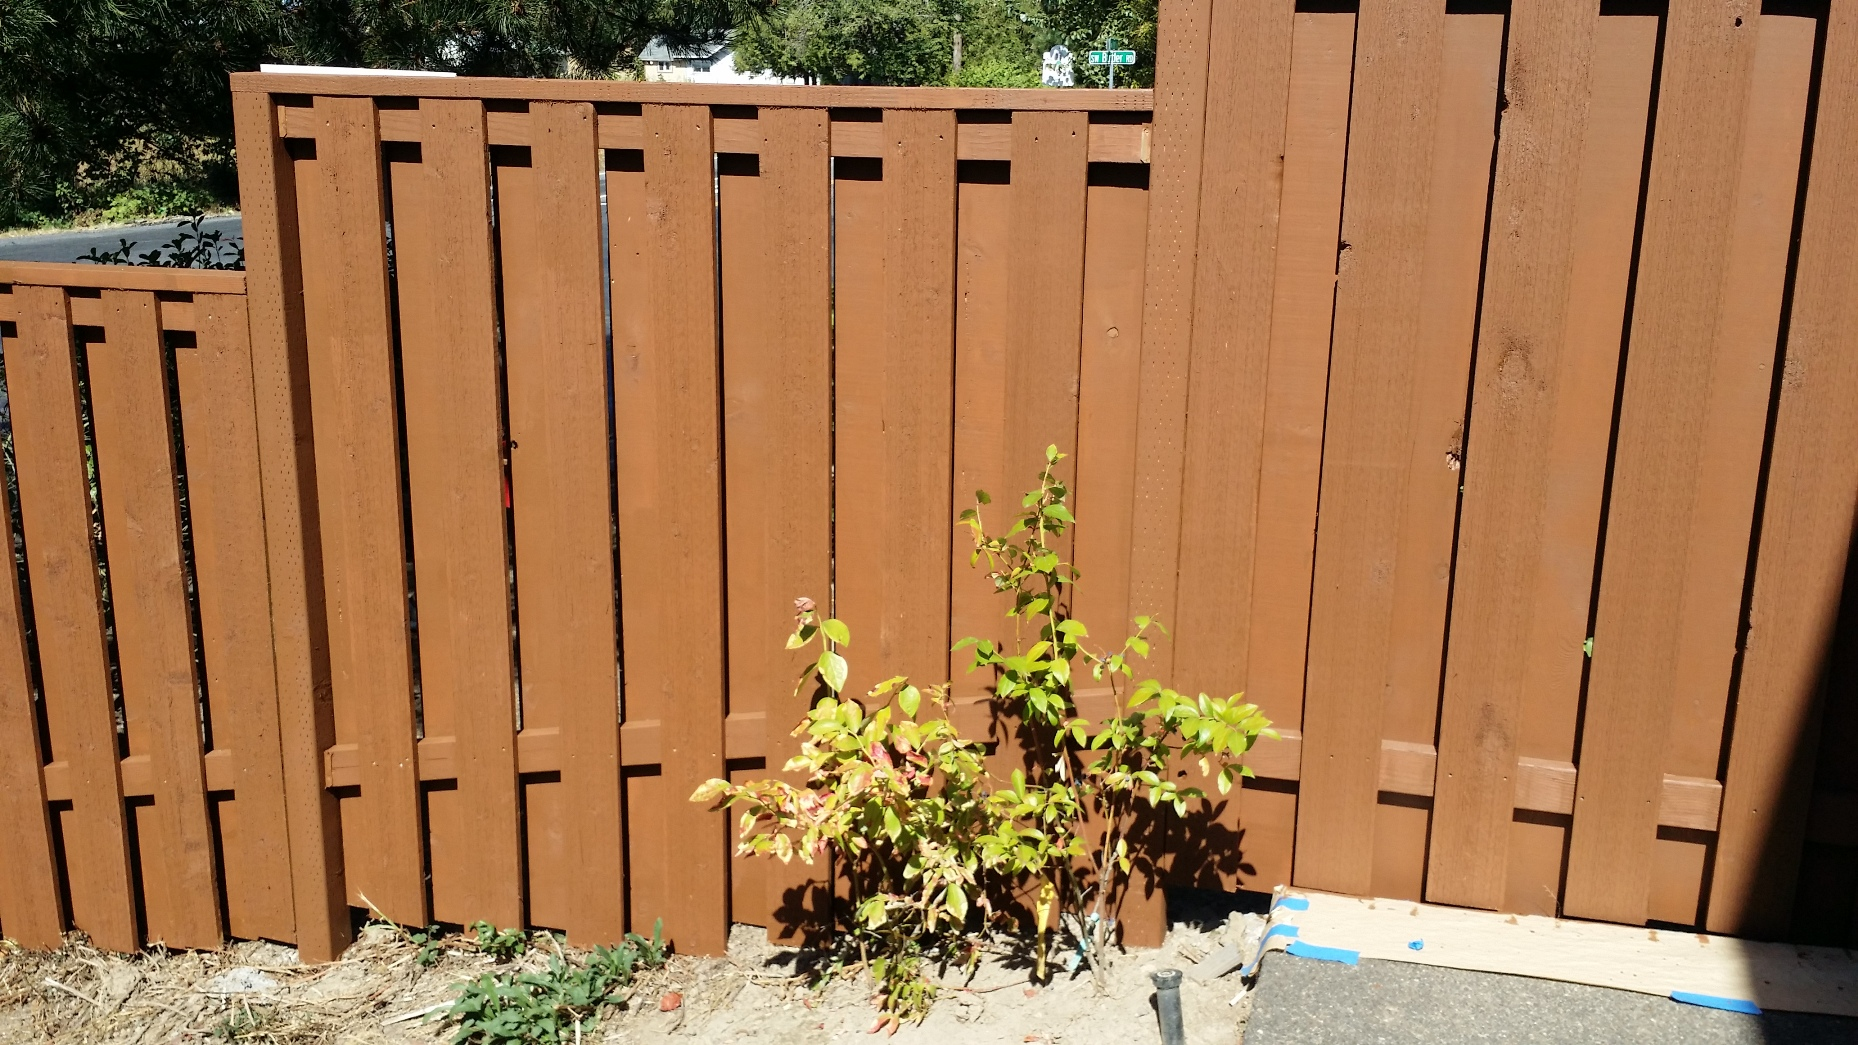 Long Beach fence repair quote, Long Beach fence contractor, Long Beach fencing company, Fence Repair Long Beach, Long Beach fencing repair